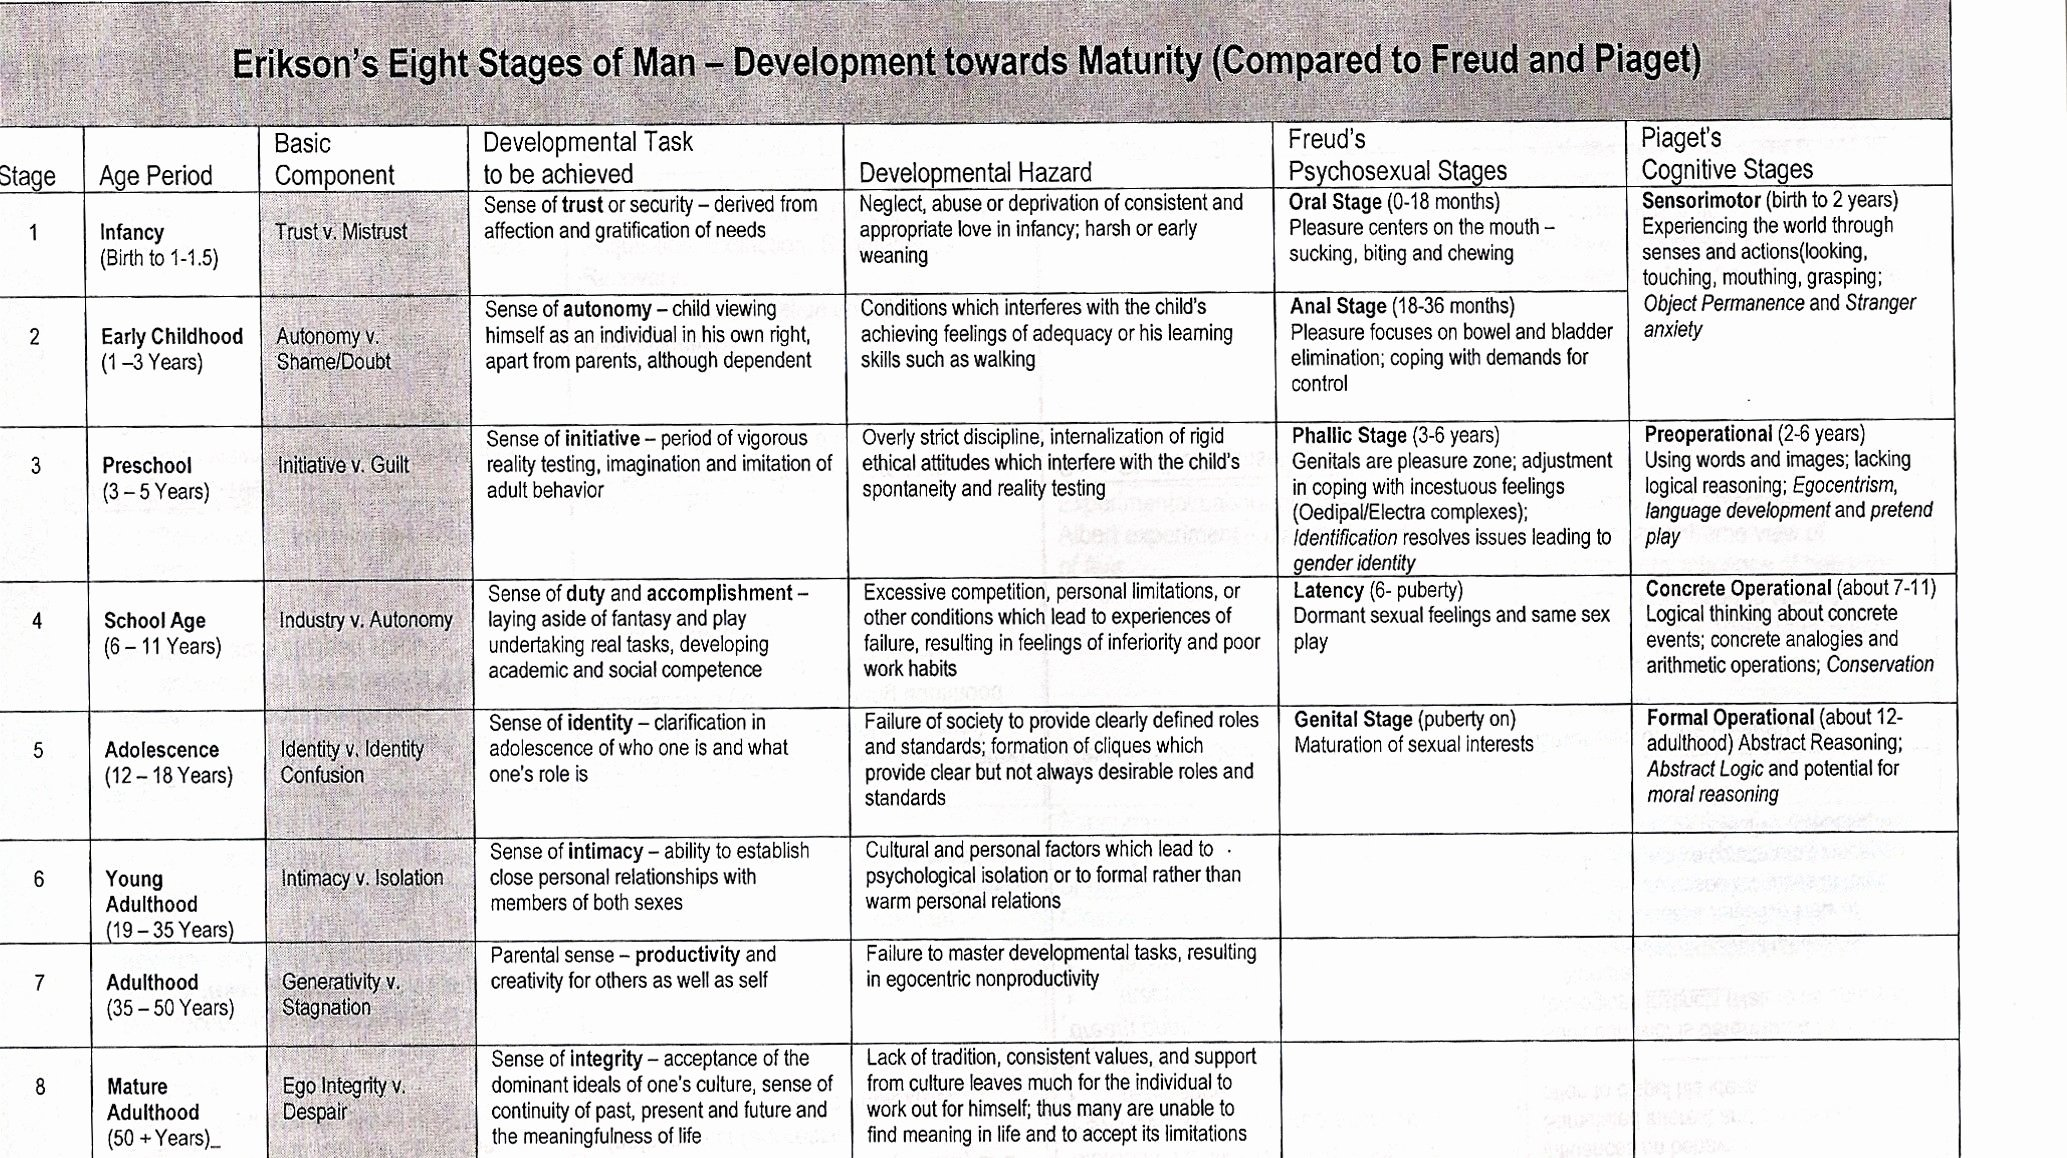 Growth and Development Chart Erikson New Erikson Pared with Pia and Freud